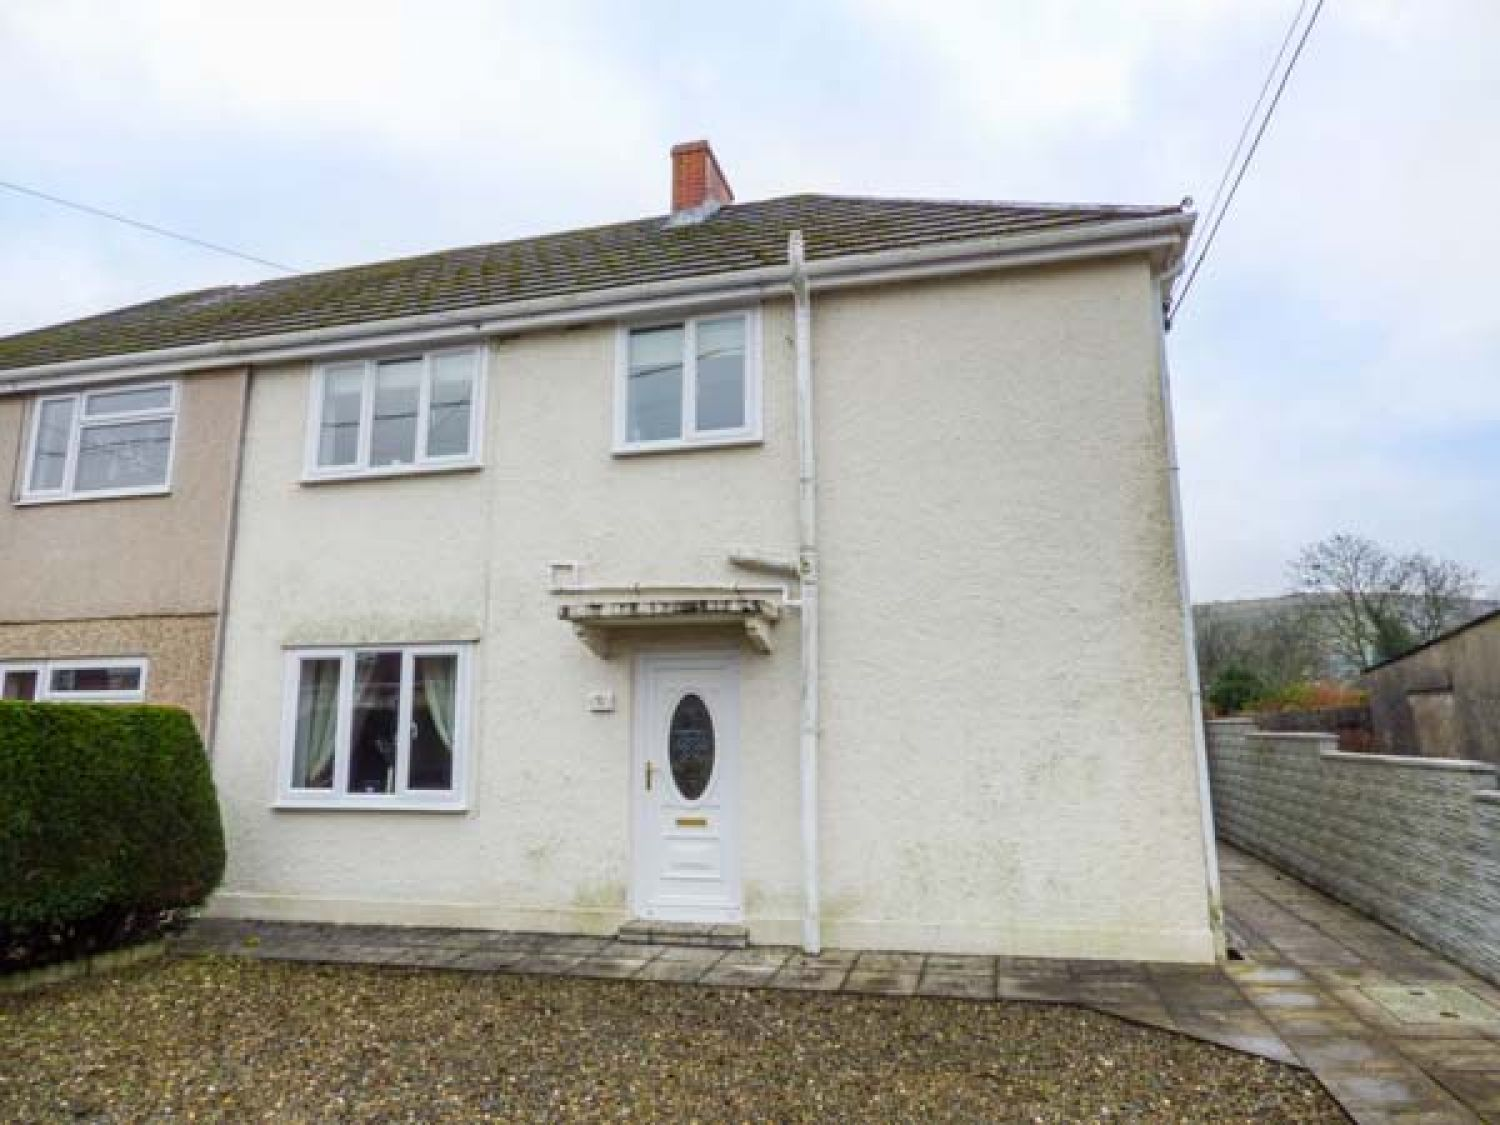 31 Heol Y Coedcae - South Wales - 915825 - photo 1